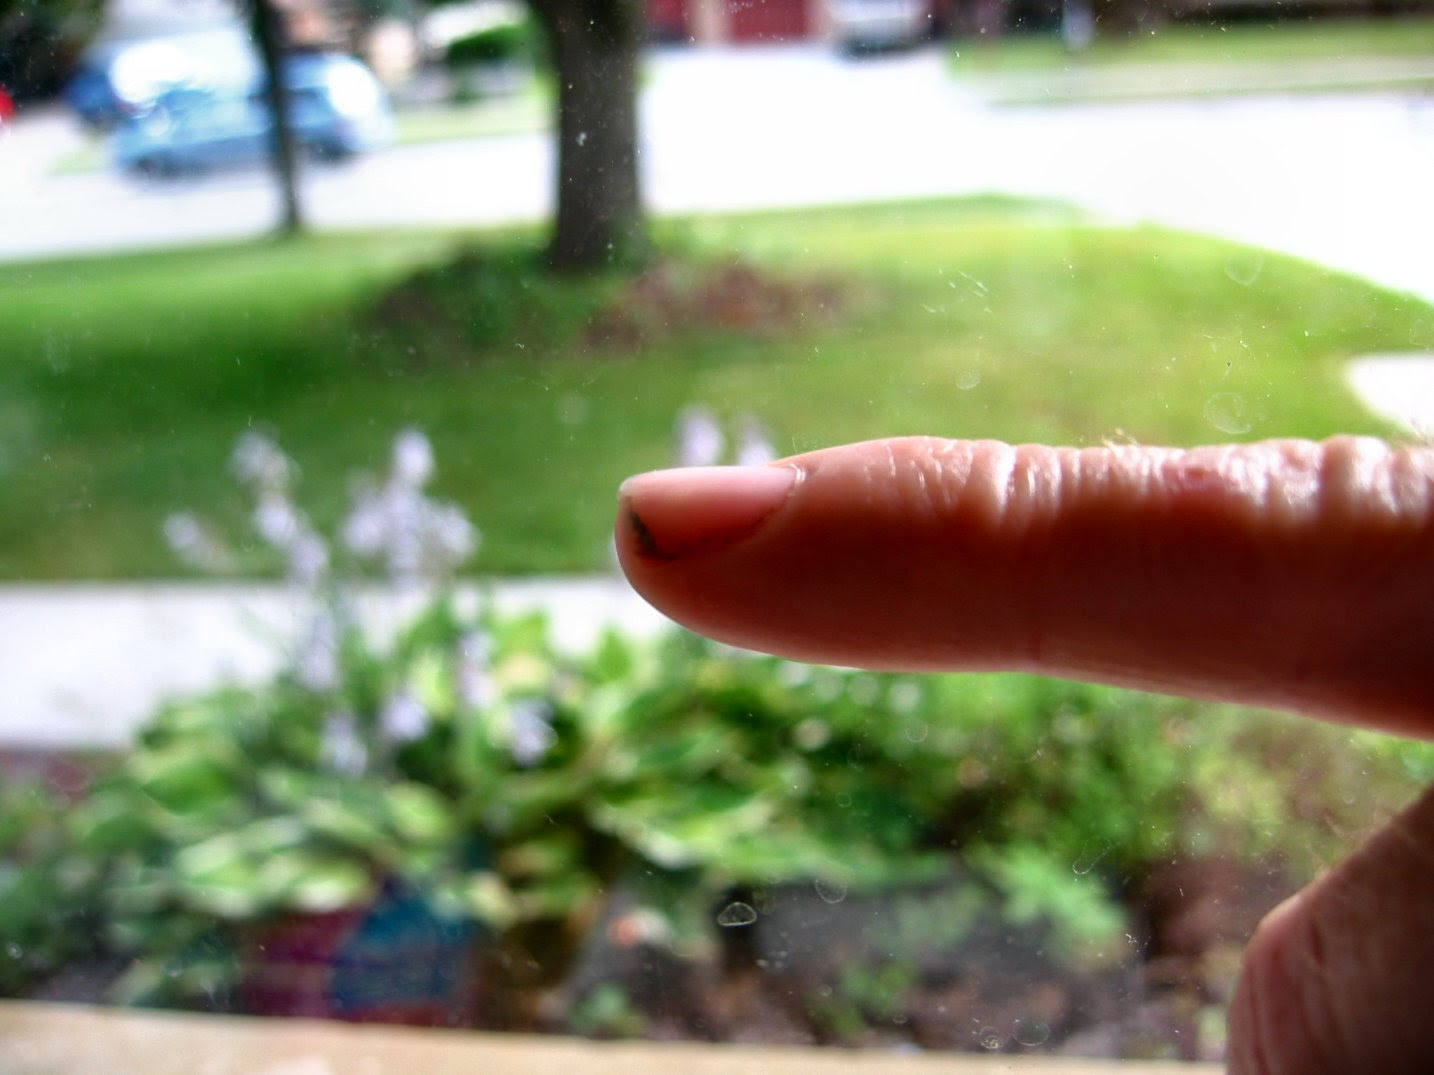 Finger and fingernail fully recovered after being smashed in May 2007.  Photo by Mike Fisk